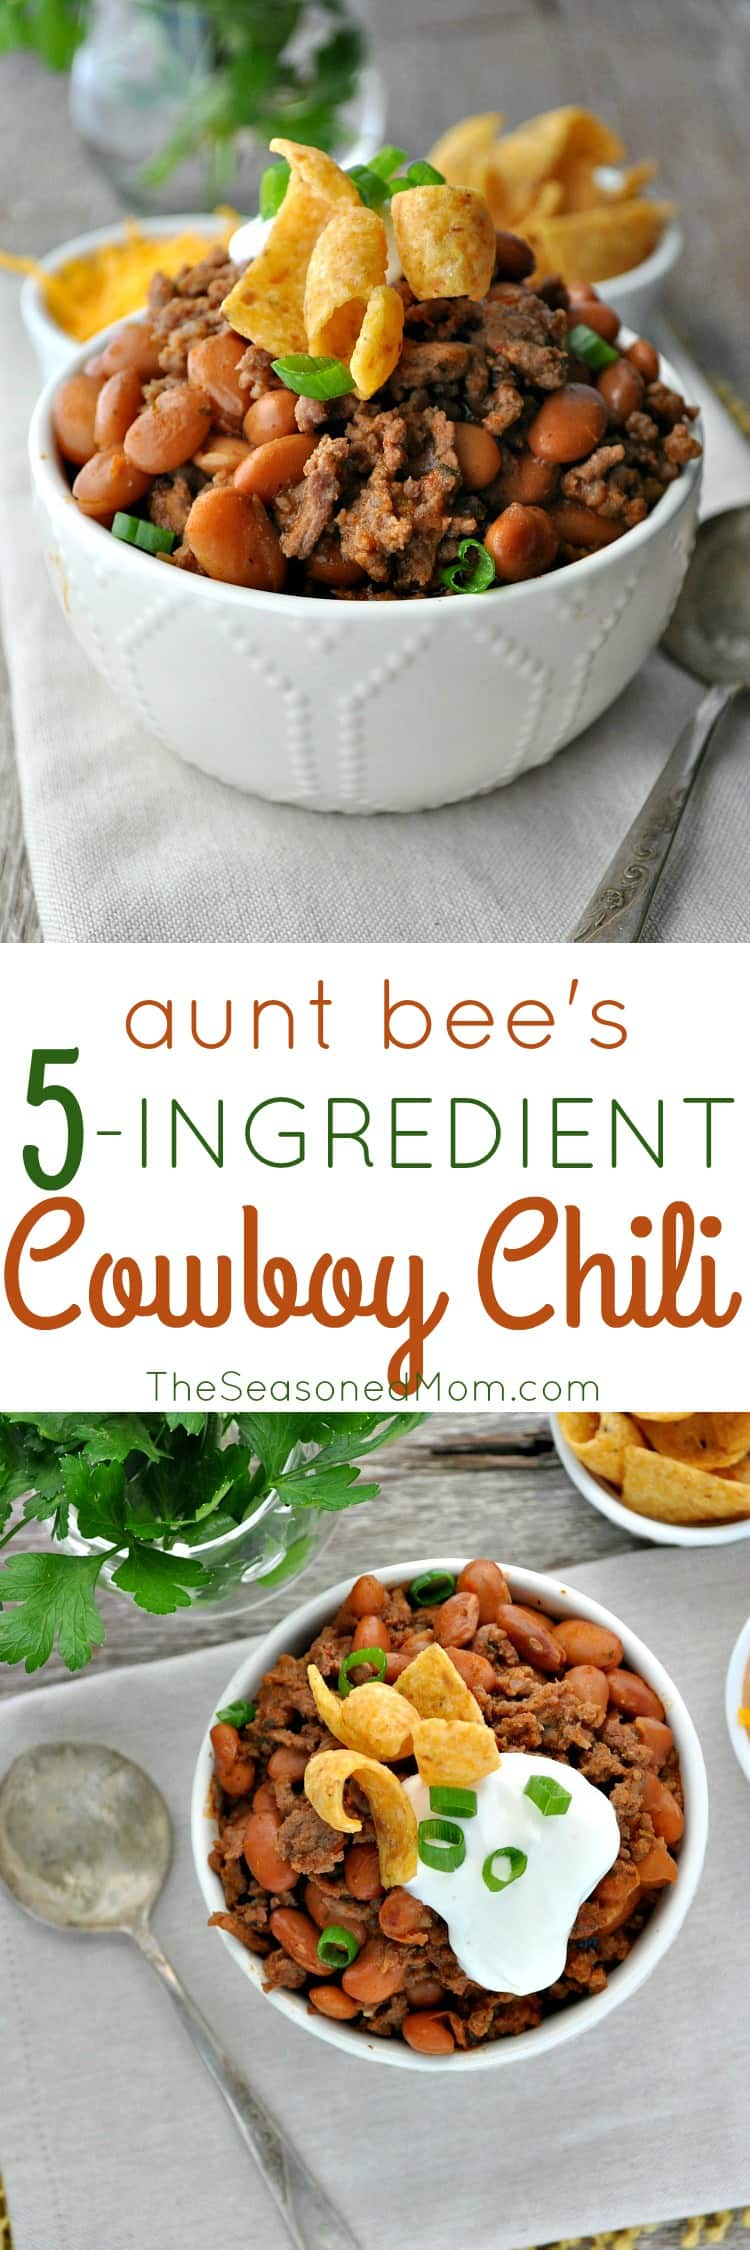 Aunt bee 39 s 5 ingredient cowboy chili the seasoned mom for Cuisine 5 ingredients